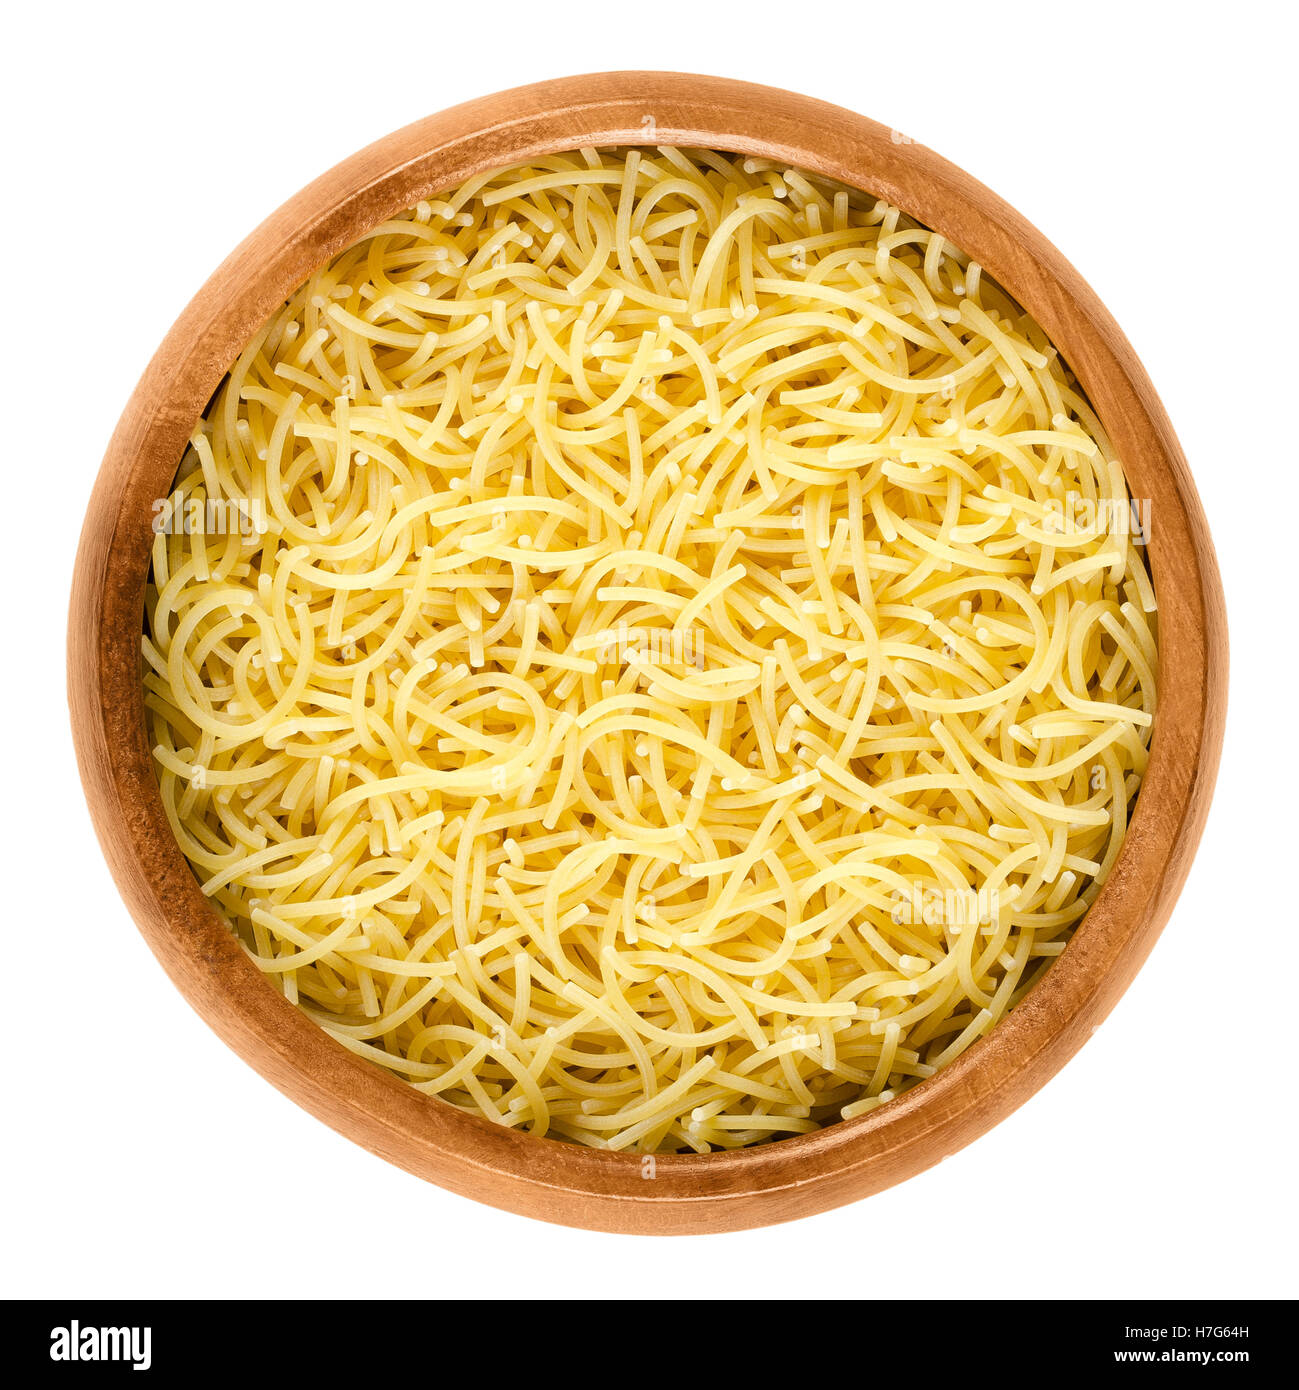 Filini short cut pasta in wooden bowl. Italian miniature noodles with little threads, prepared with eggs. - Stock Image